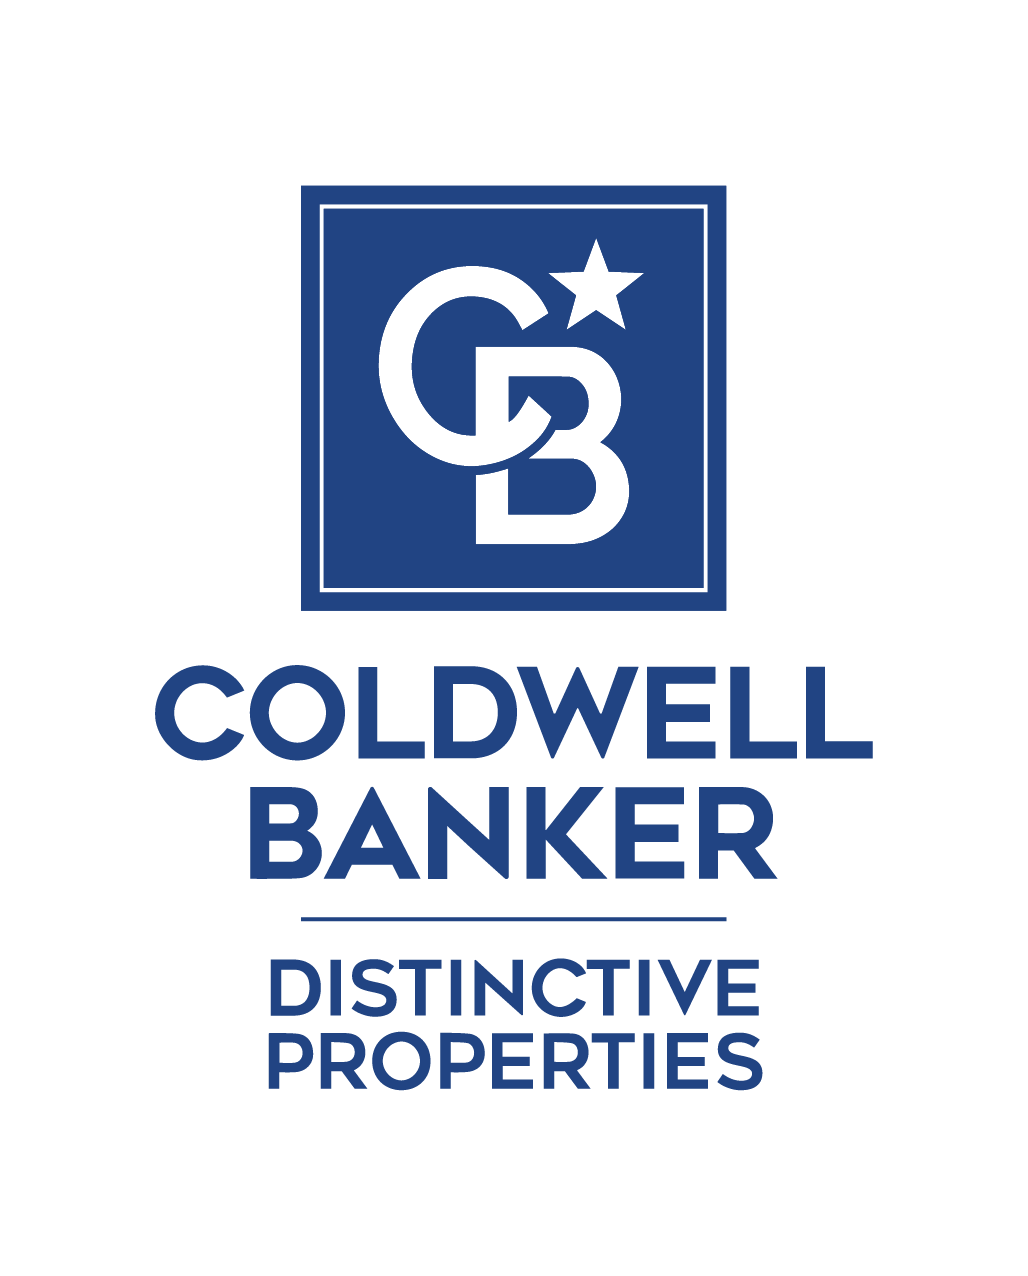 Renevier Real Estate - Coldwell Banker Distinctive Properties Logo